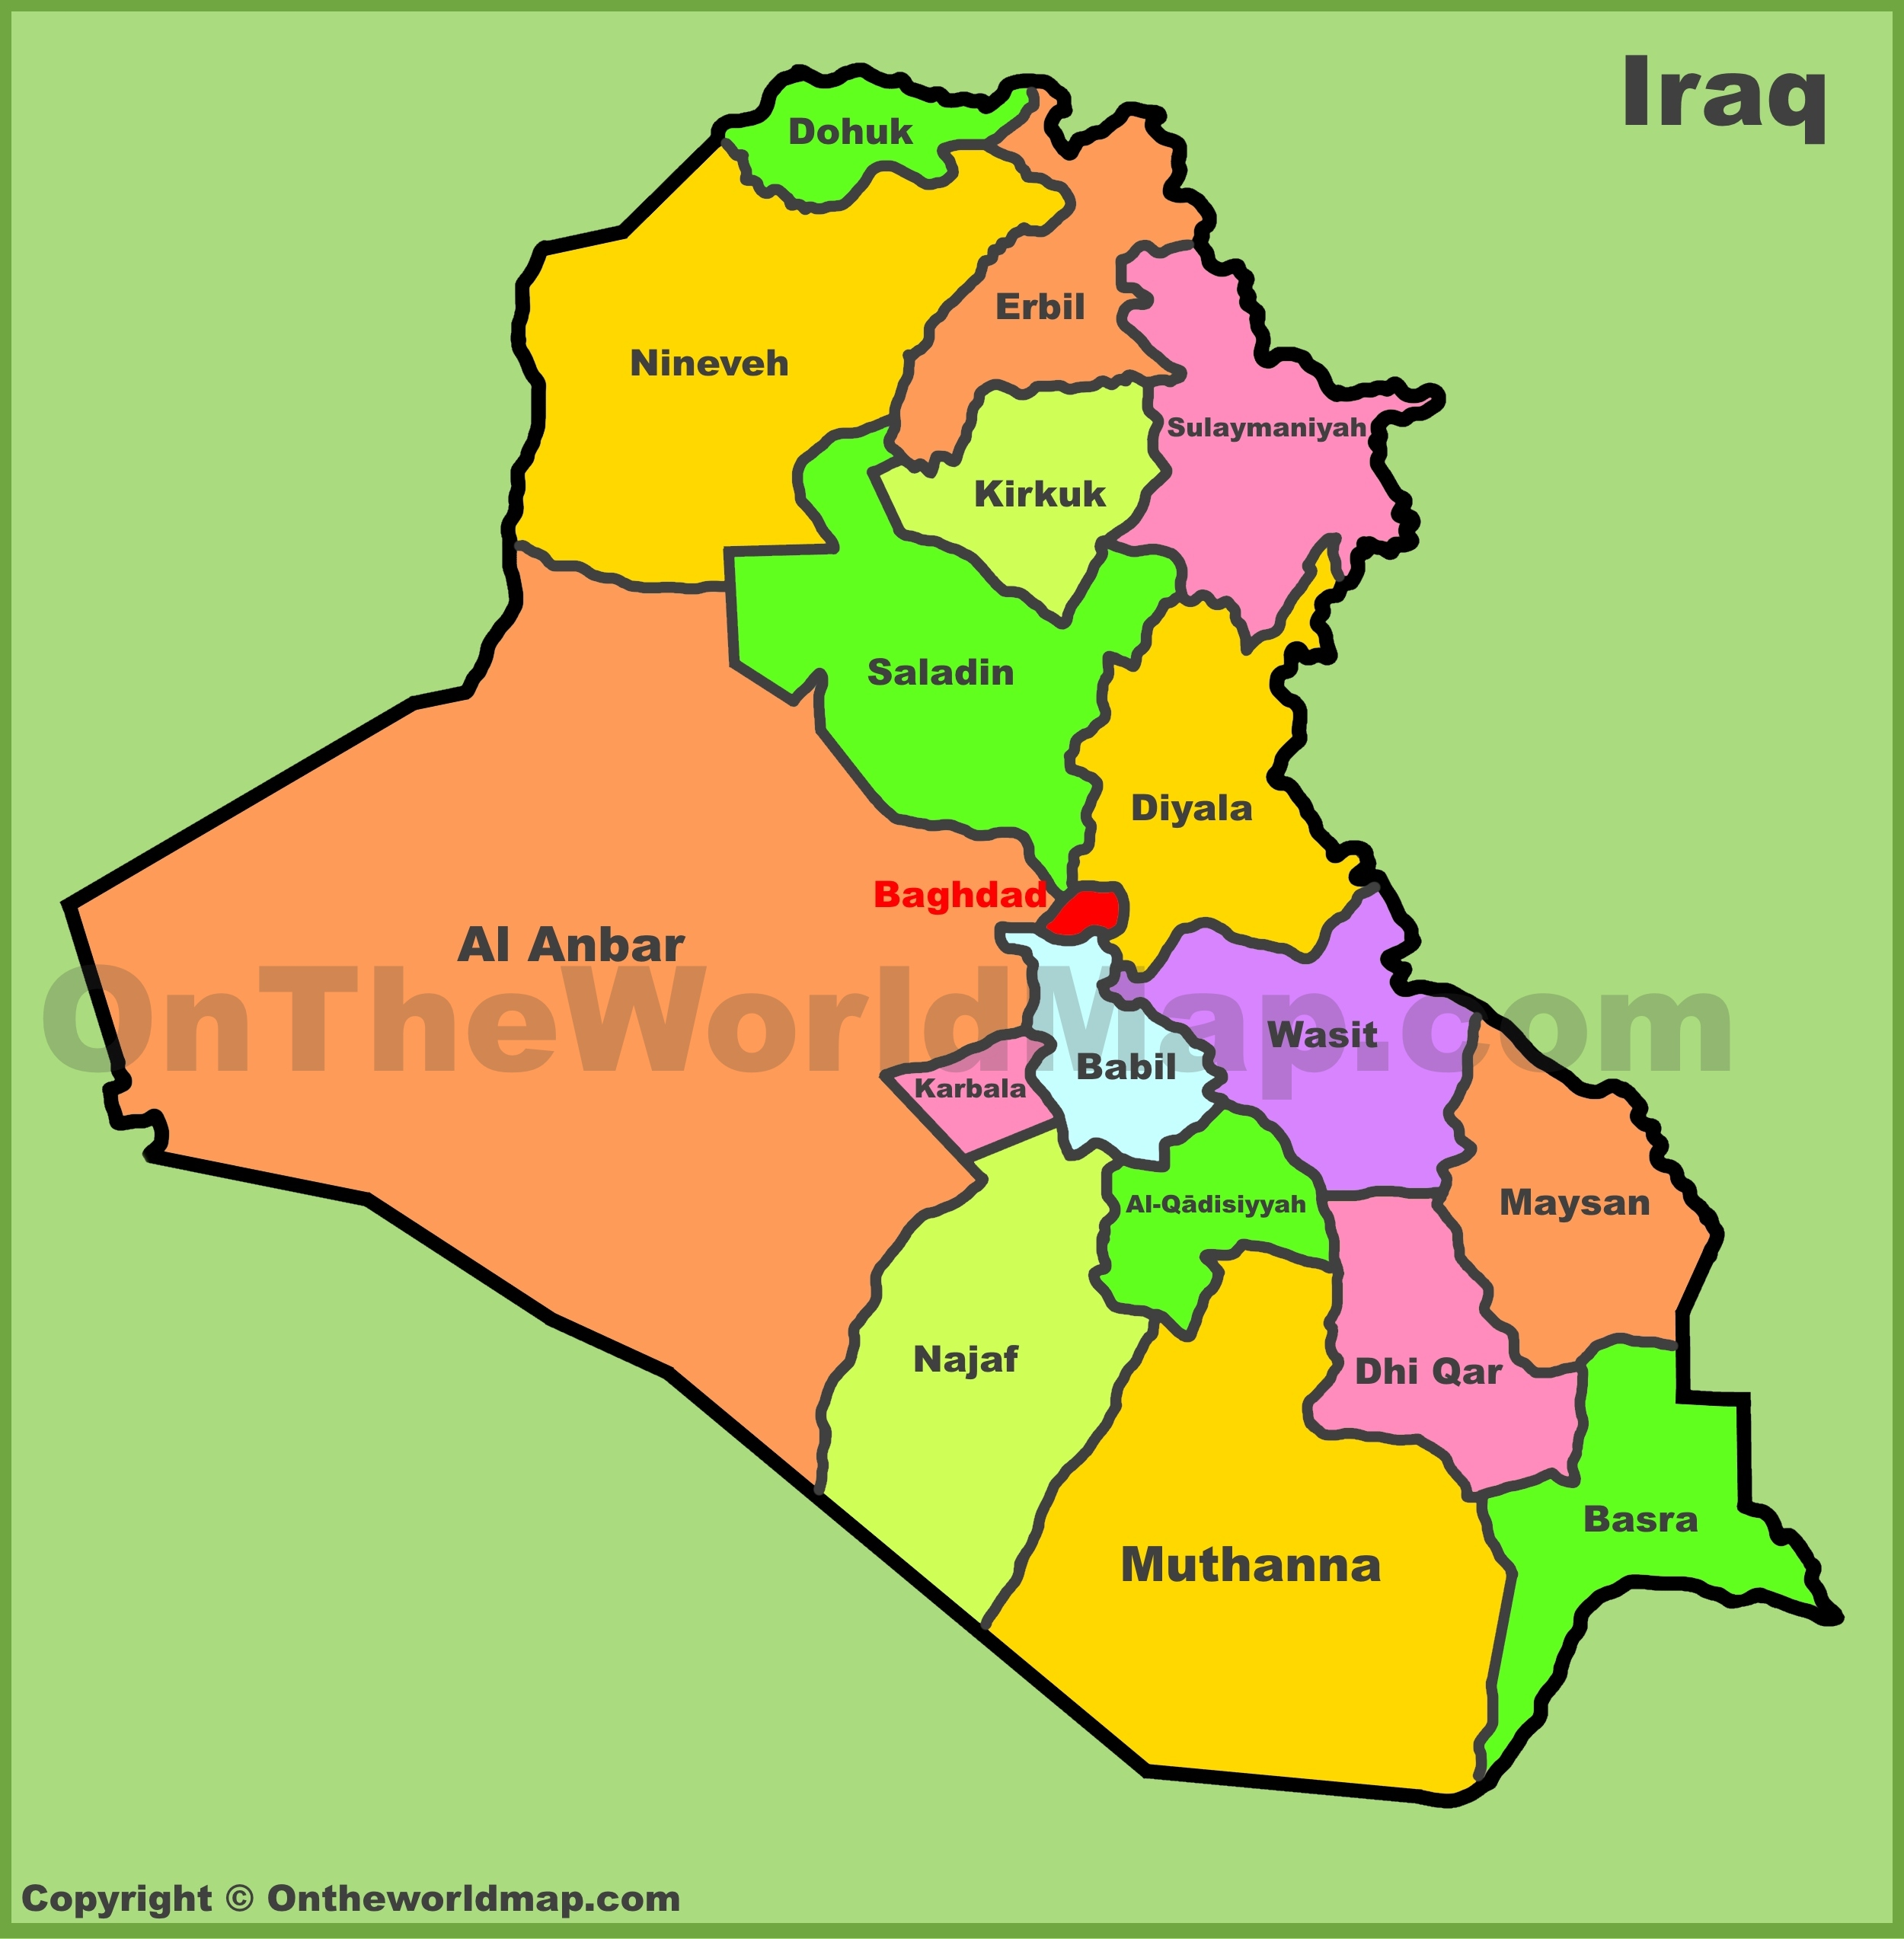 Iraq Maps Maps Of Iraq - Iraq map